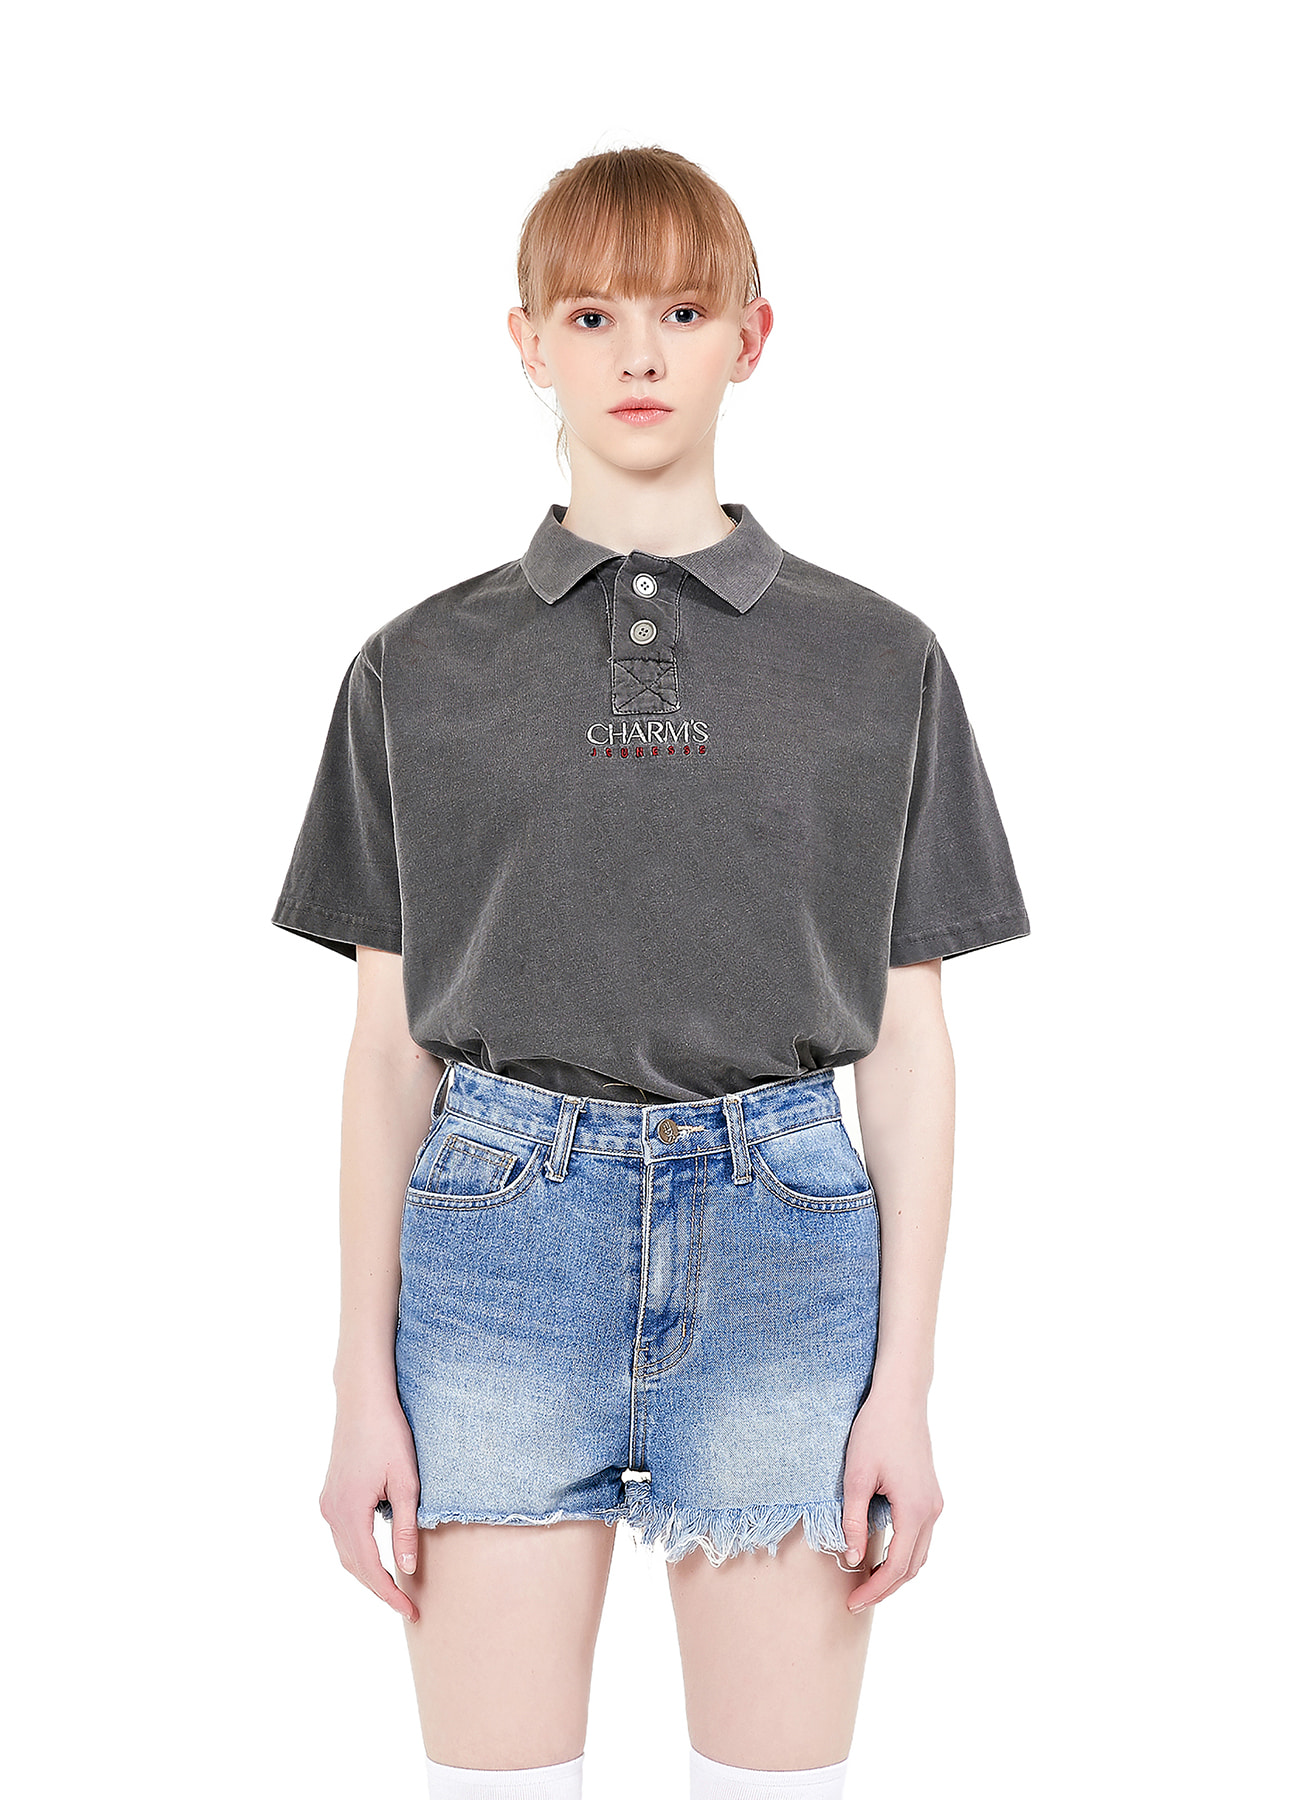 JEUNESSE X CHARMS SHORTSLEEVED PIQUE T_BK